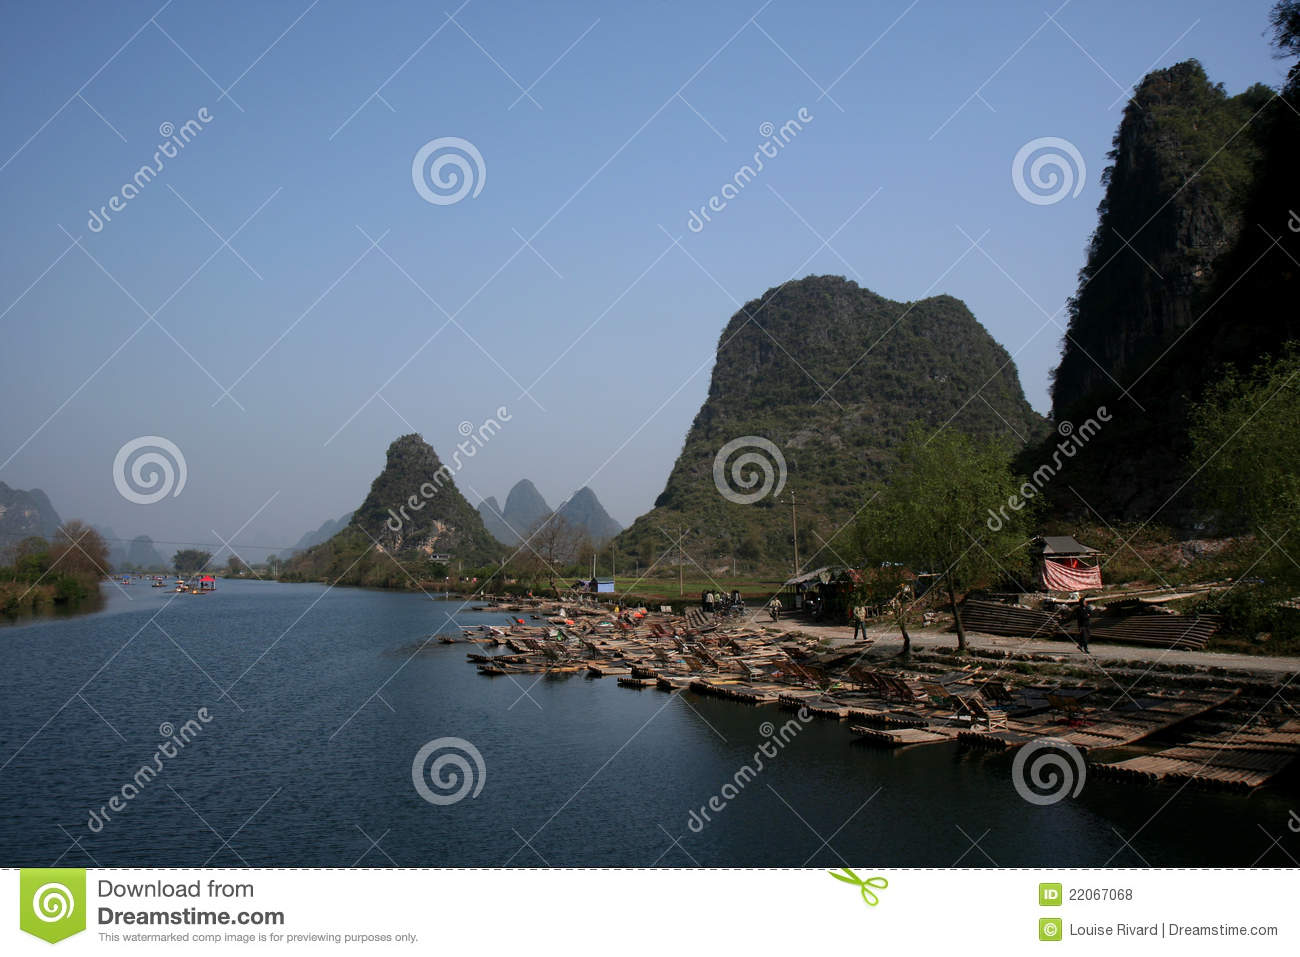 China Royalty Free Landscapes